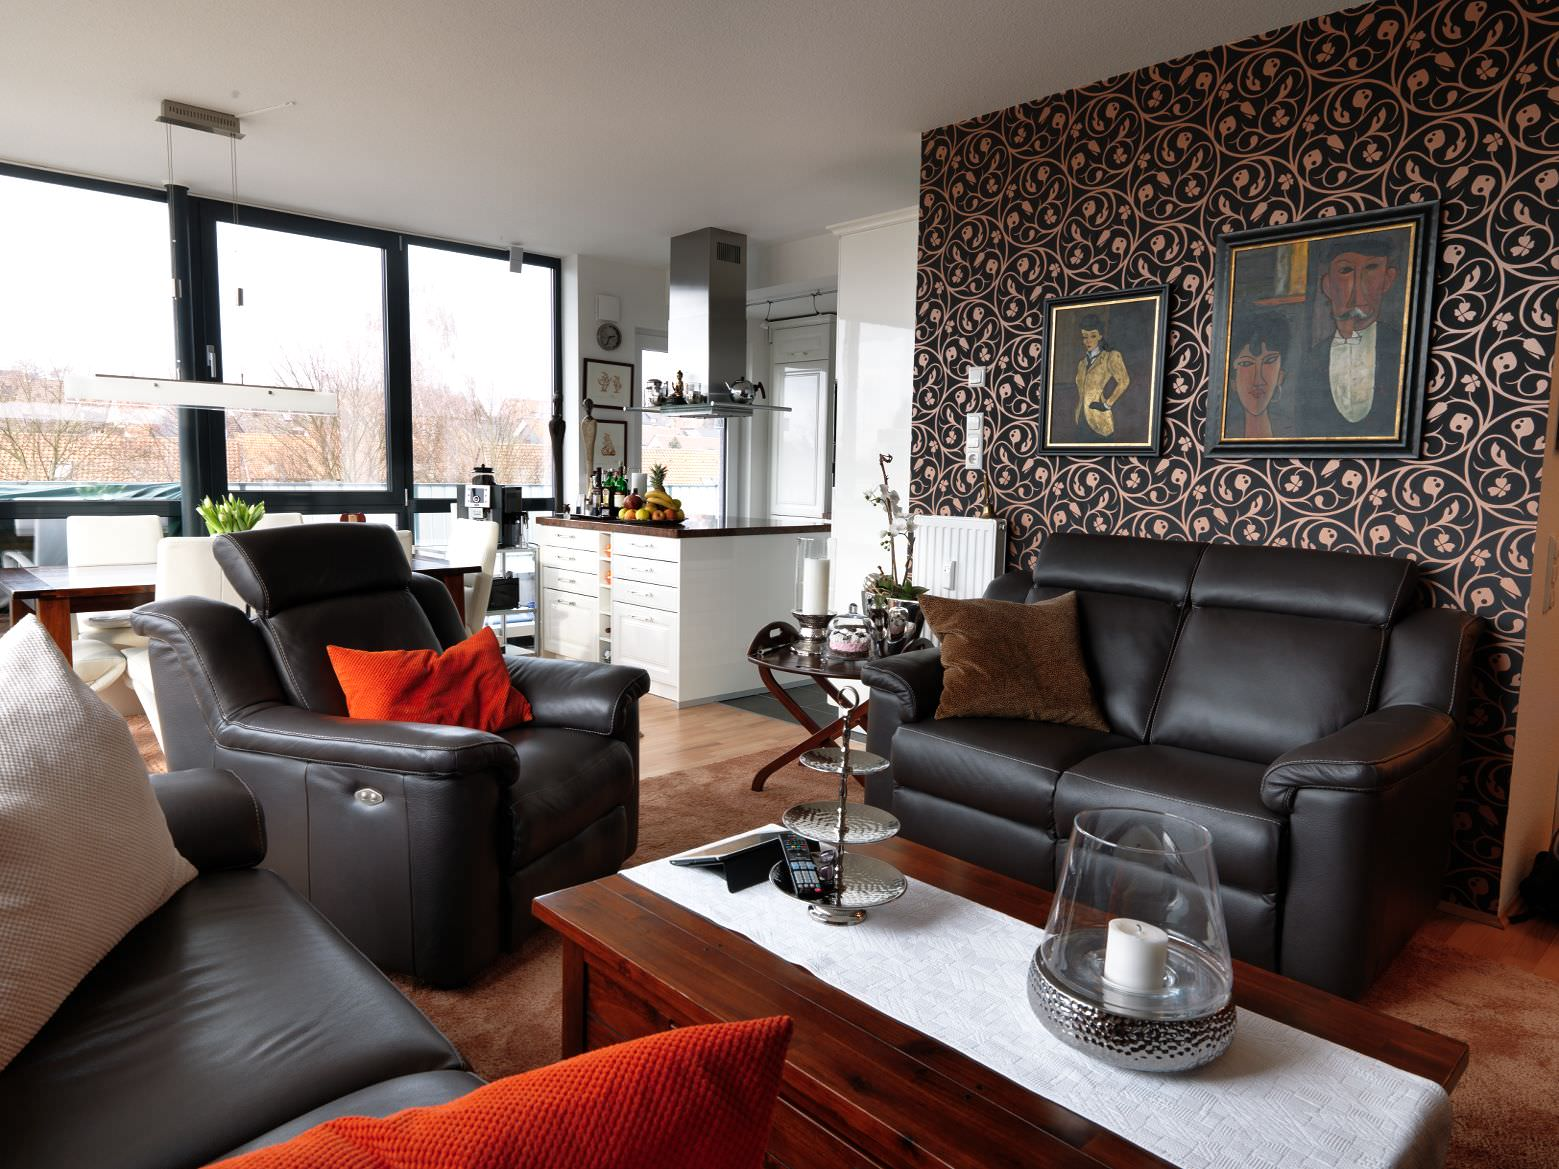 Penthouse-Wohnung